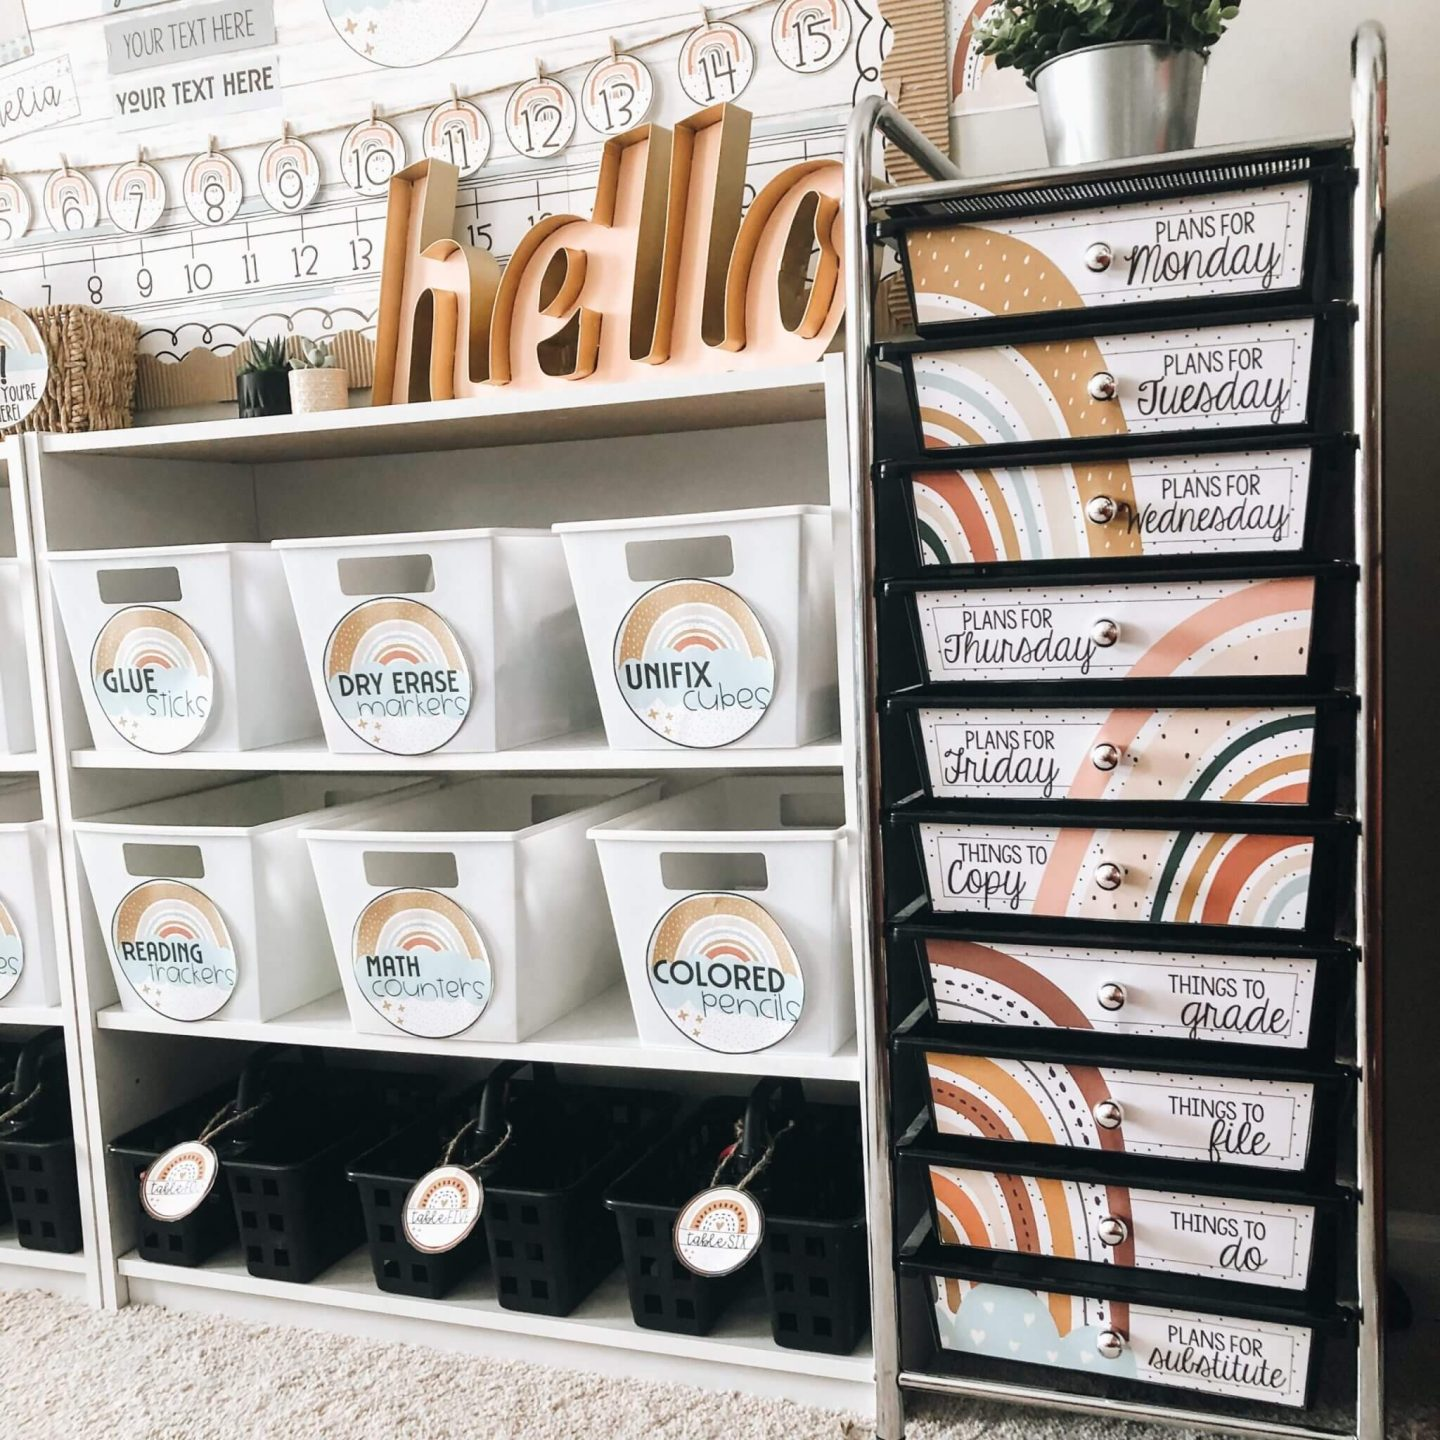 Another classroom organization idea is to label bins and containers used for copies and materials.